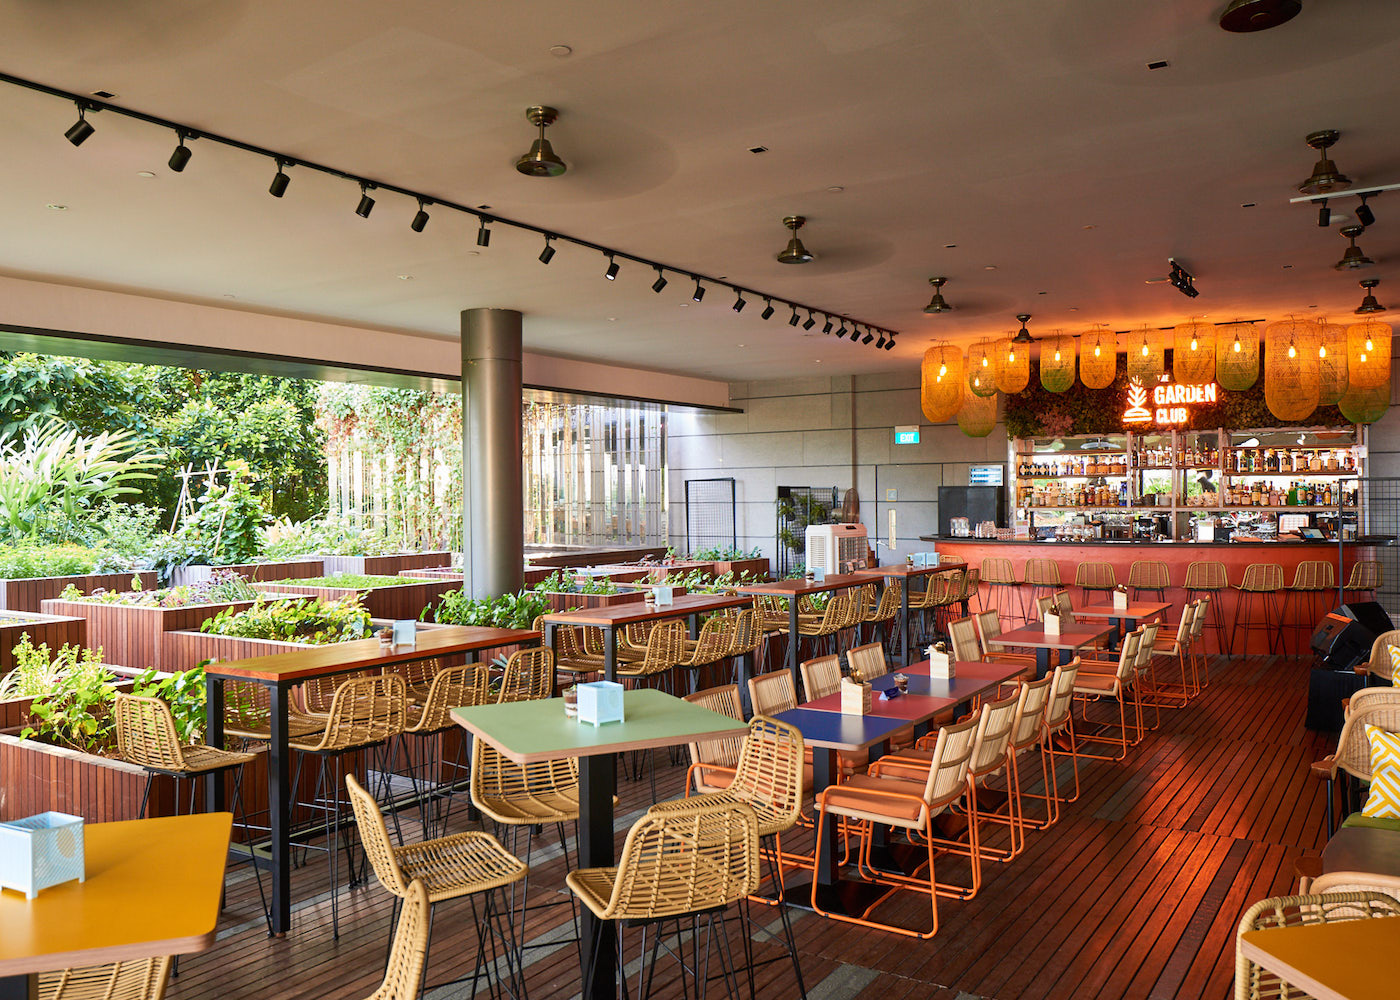 Chill in the CBD: The Garden Club is a hidden rooftop gem with live music and laidback vibes